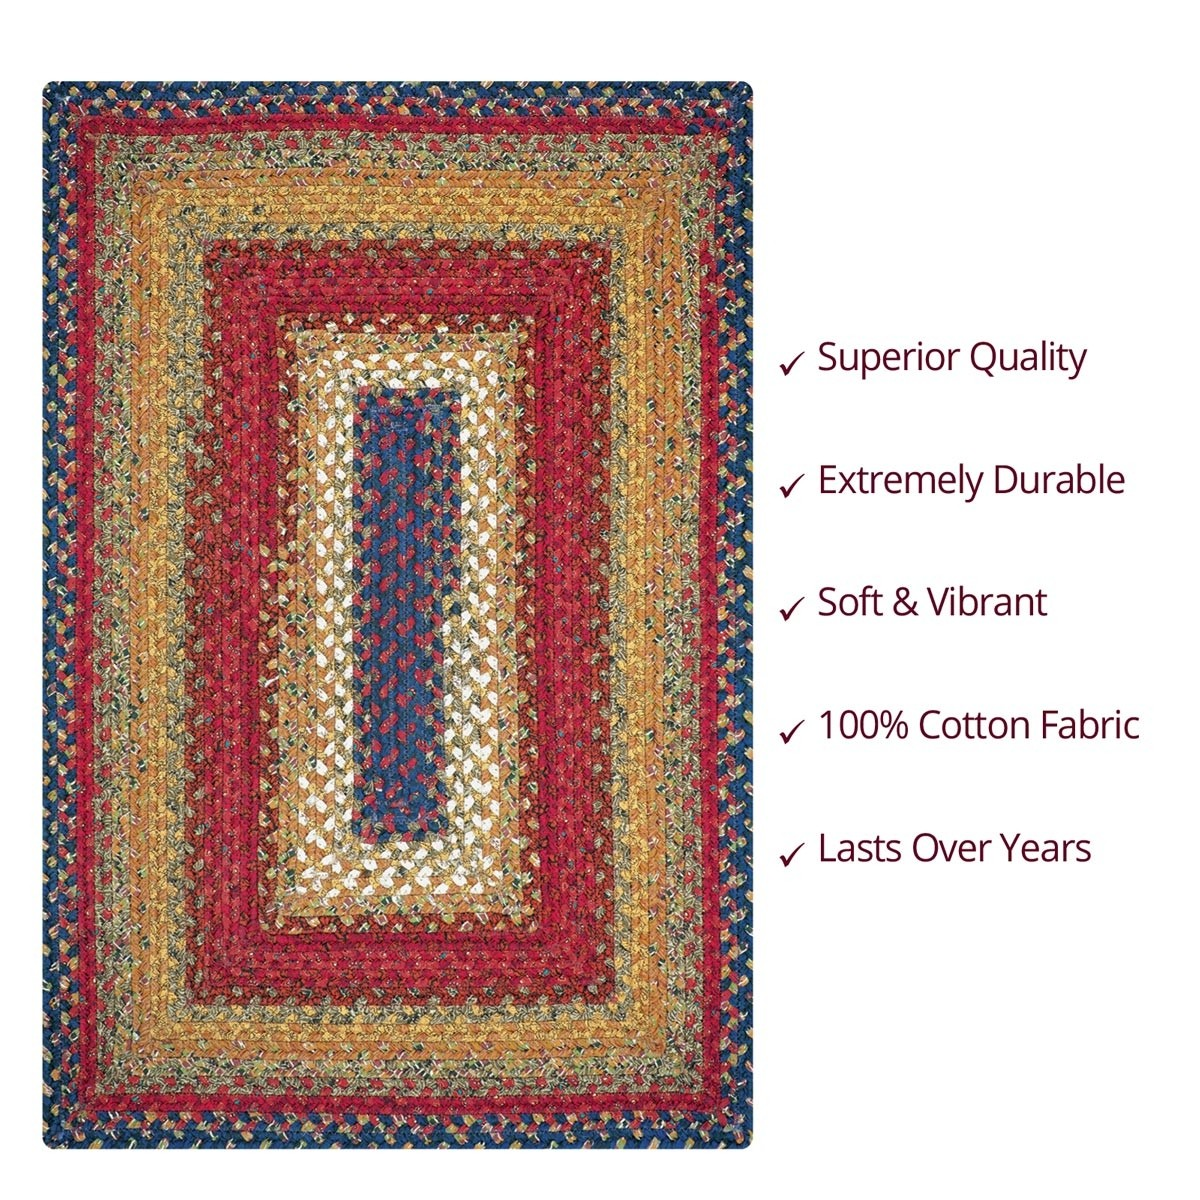 Durable Kitchen Table Top Buy Log Cabin Step Multi Color Cotton Braided Rugs Online